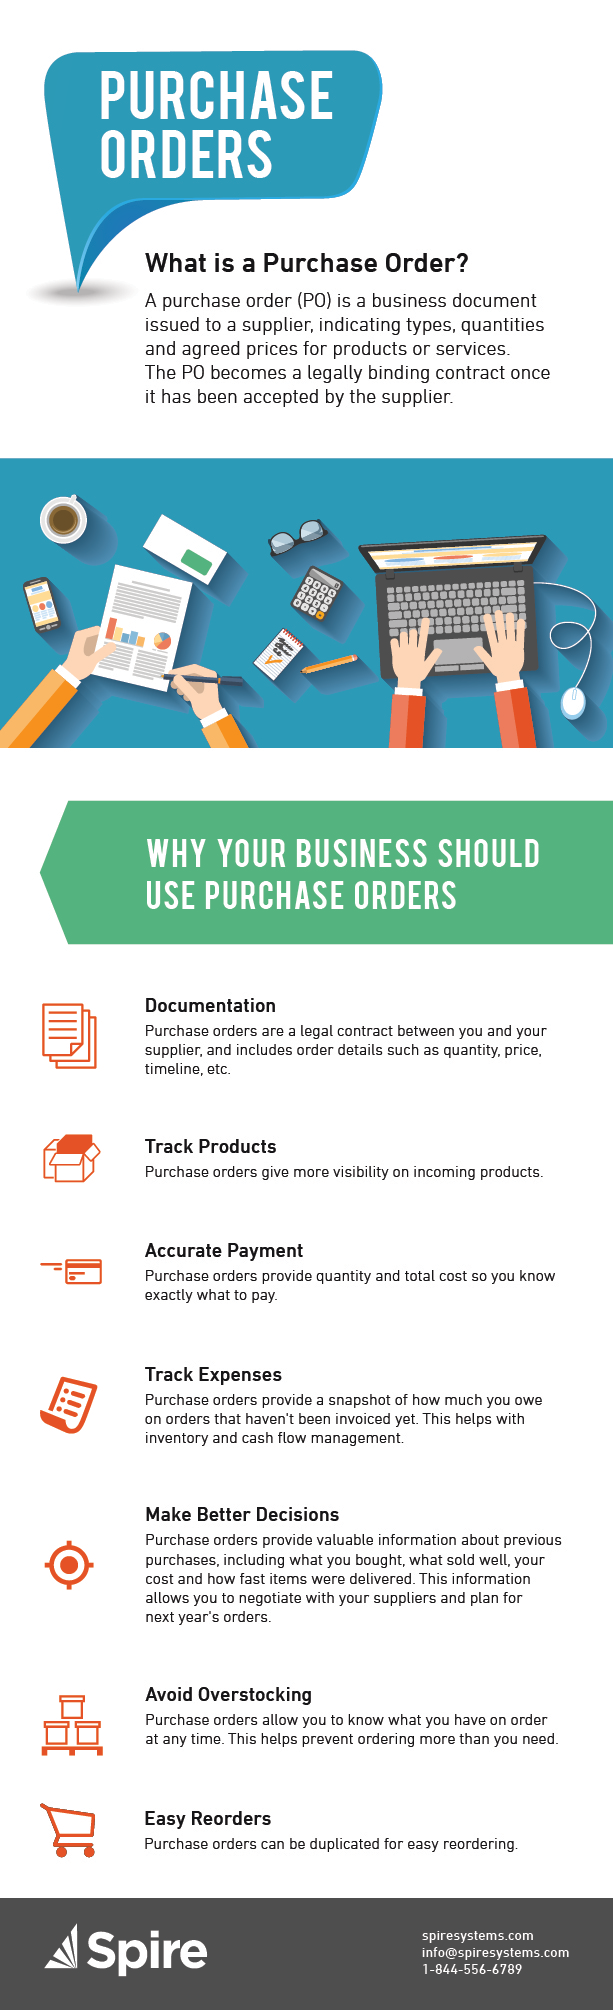 purchase orders infographic